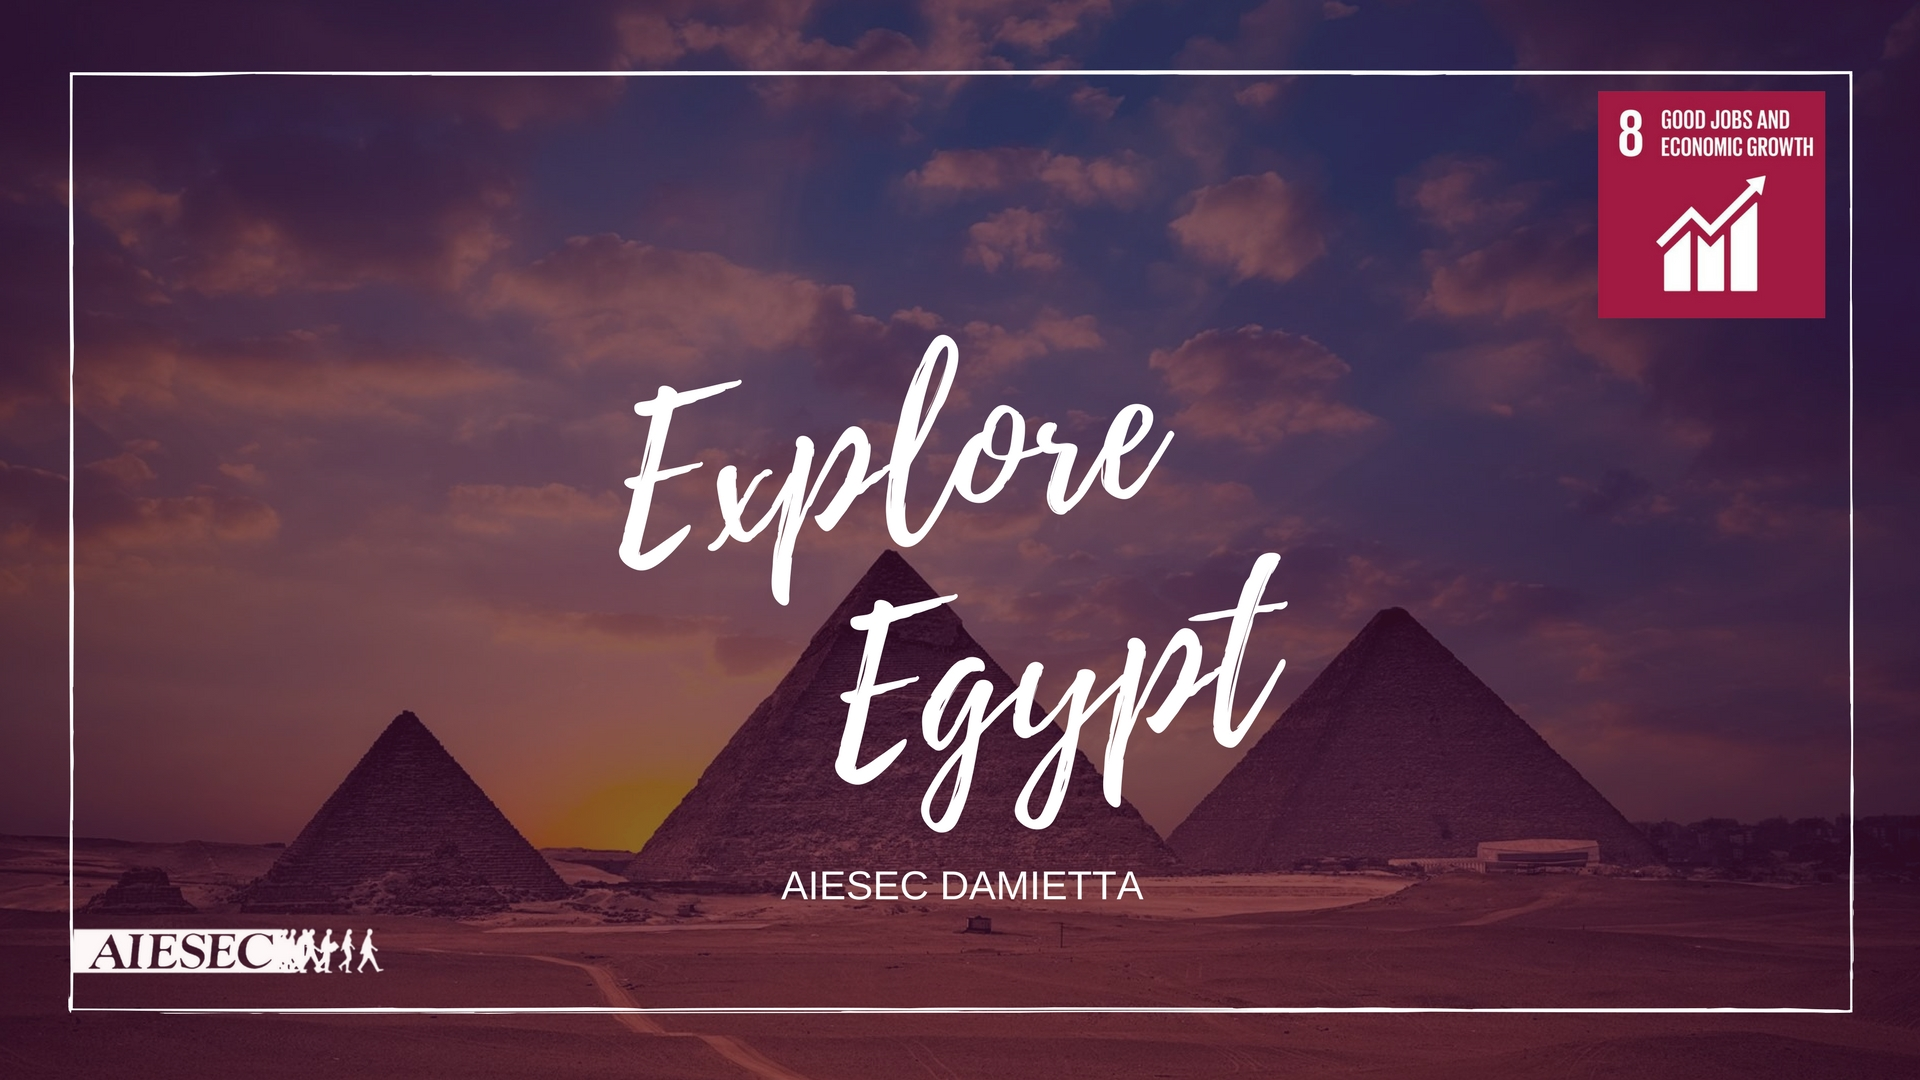 Explore Egypt for Promoting Tourism